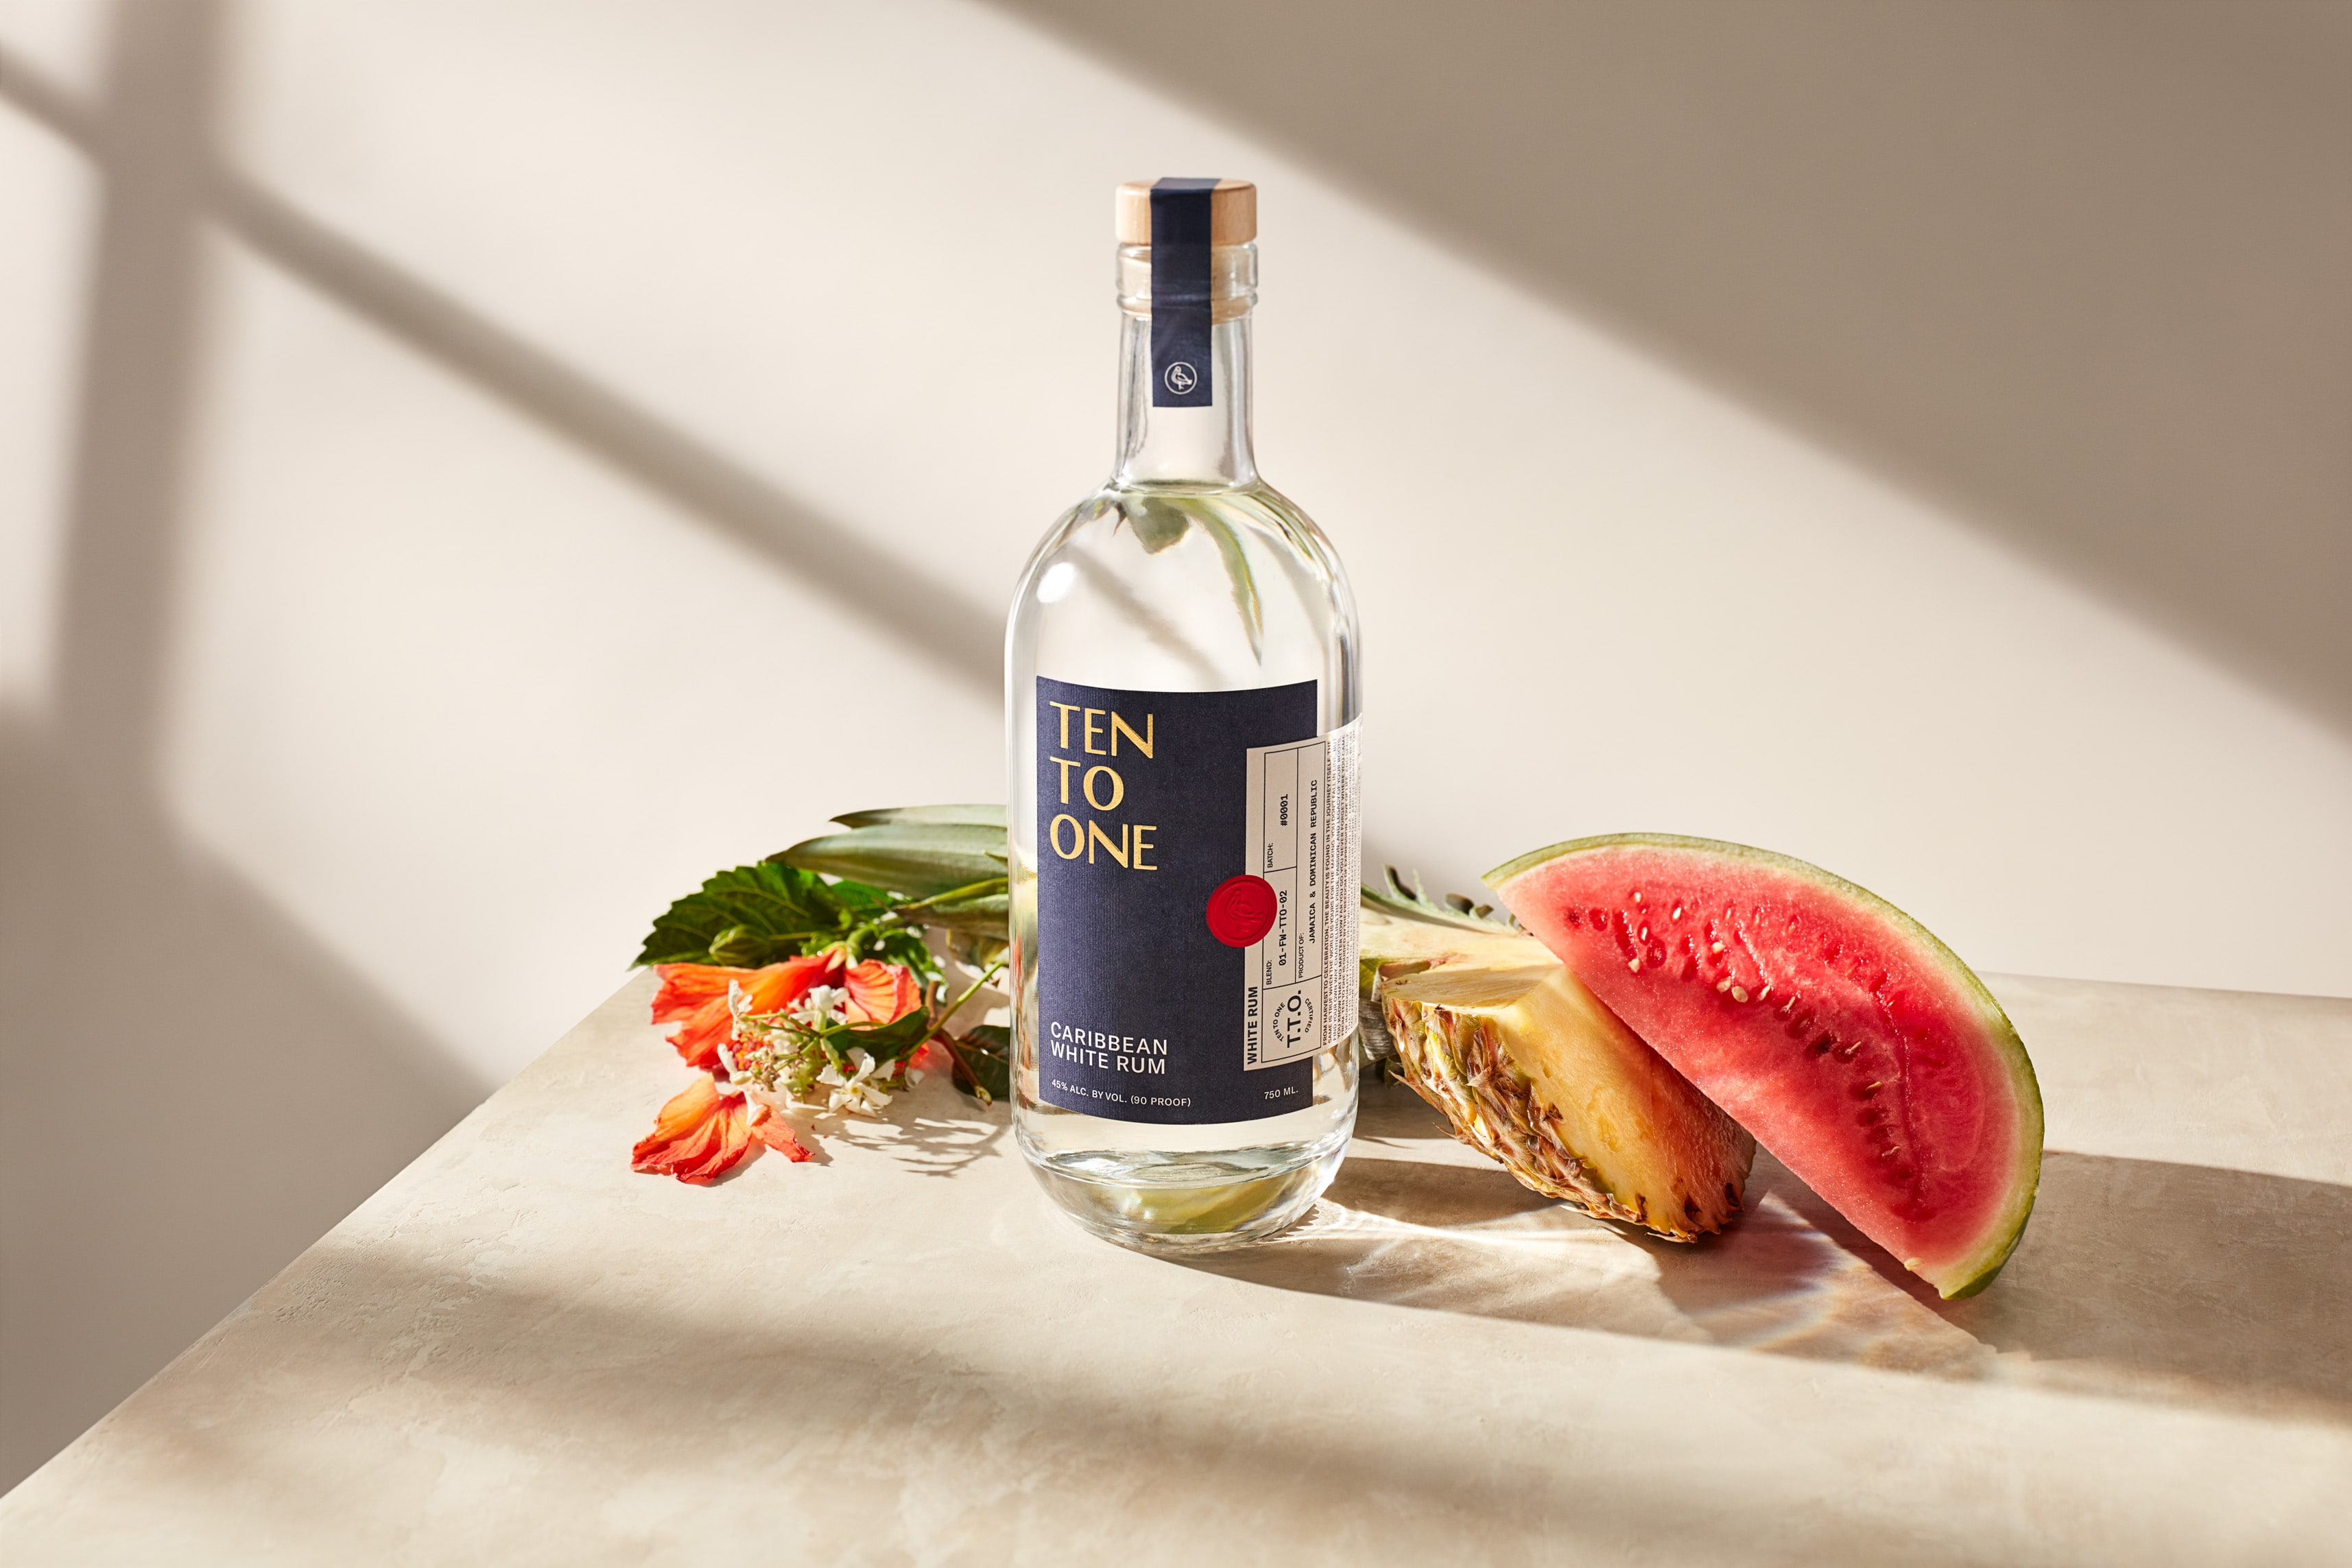 A bottle of Ten to One rum with assorted fruits